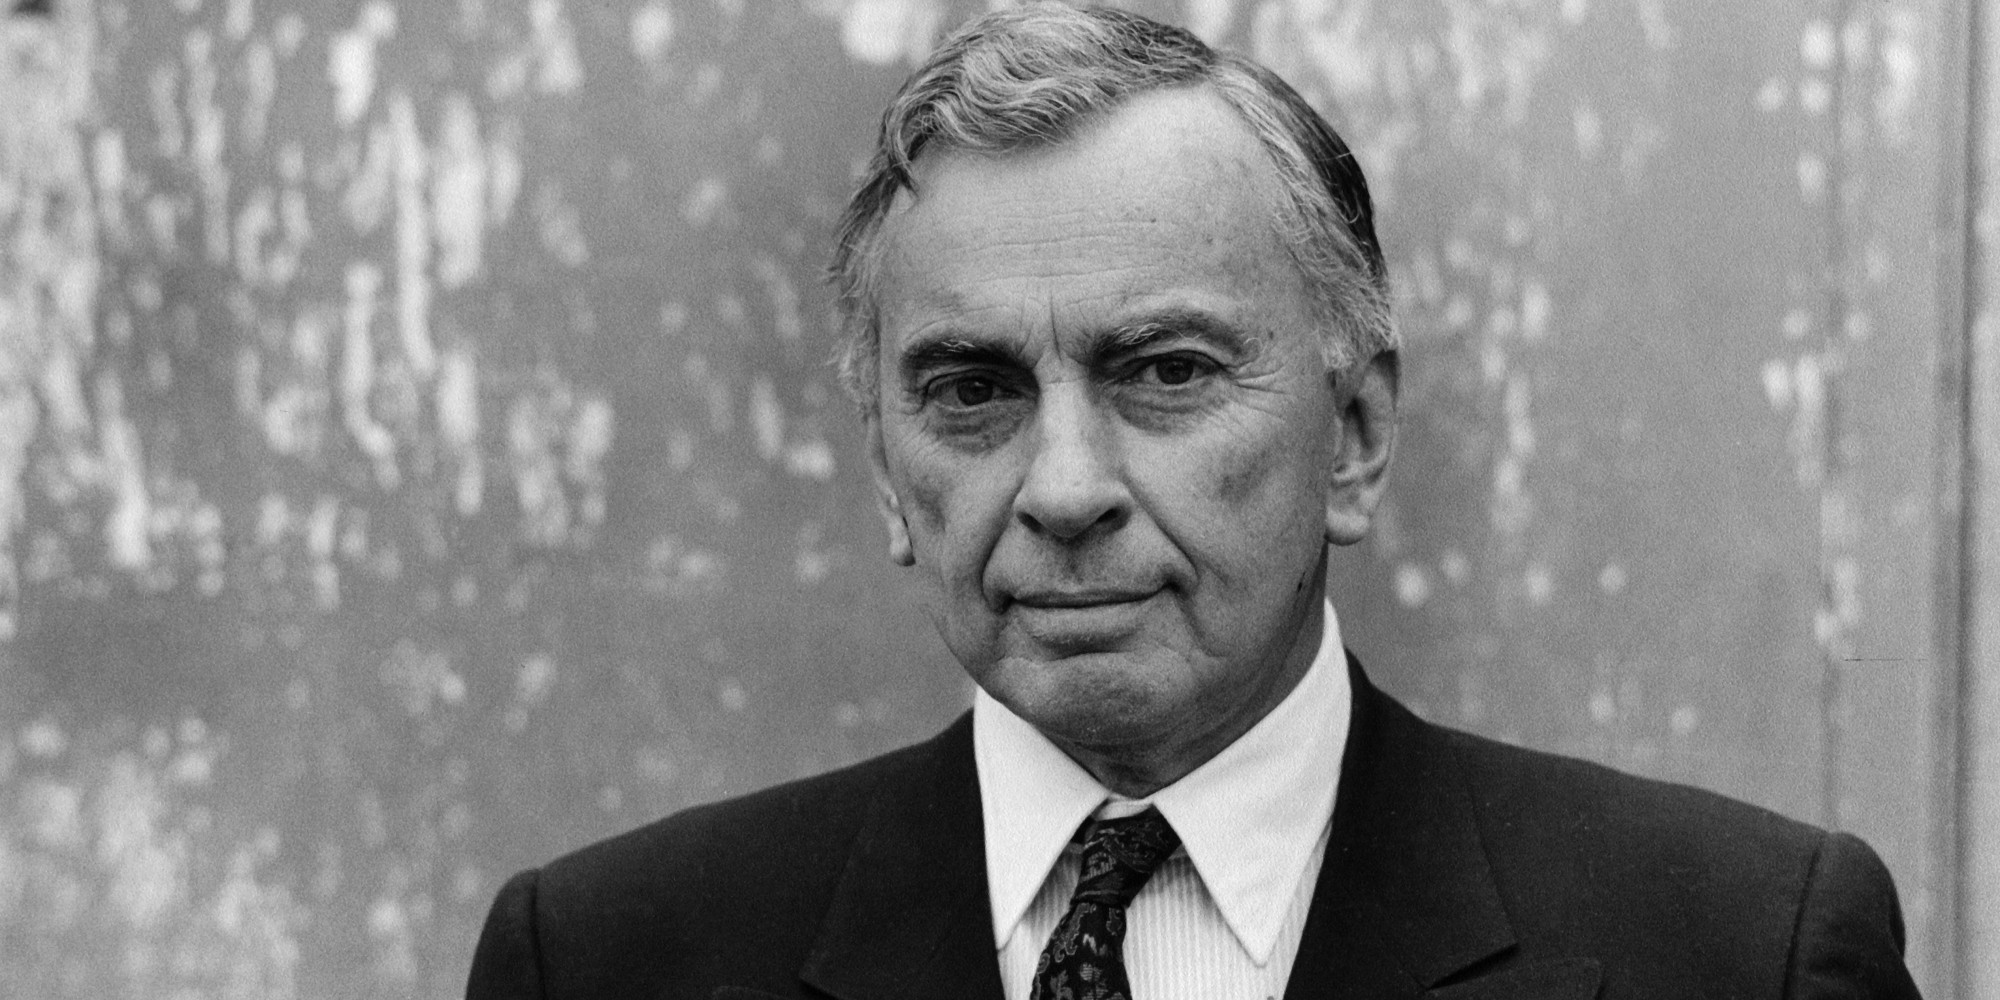 gore vidal best essay Gore vidal index welcome to the introduction to the gore vidal index follow the links in the index on the left of your screen to read some writing about and by vidal if you came right to this introductory essay and don't have an index in a frame on the left, then click here  note: the color image at left is a link to a copyrighted image on saloncom.